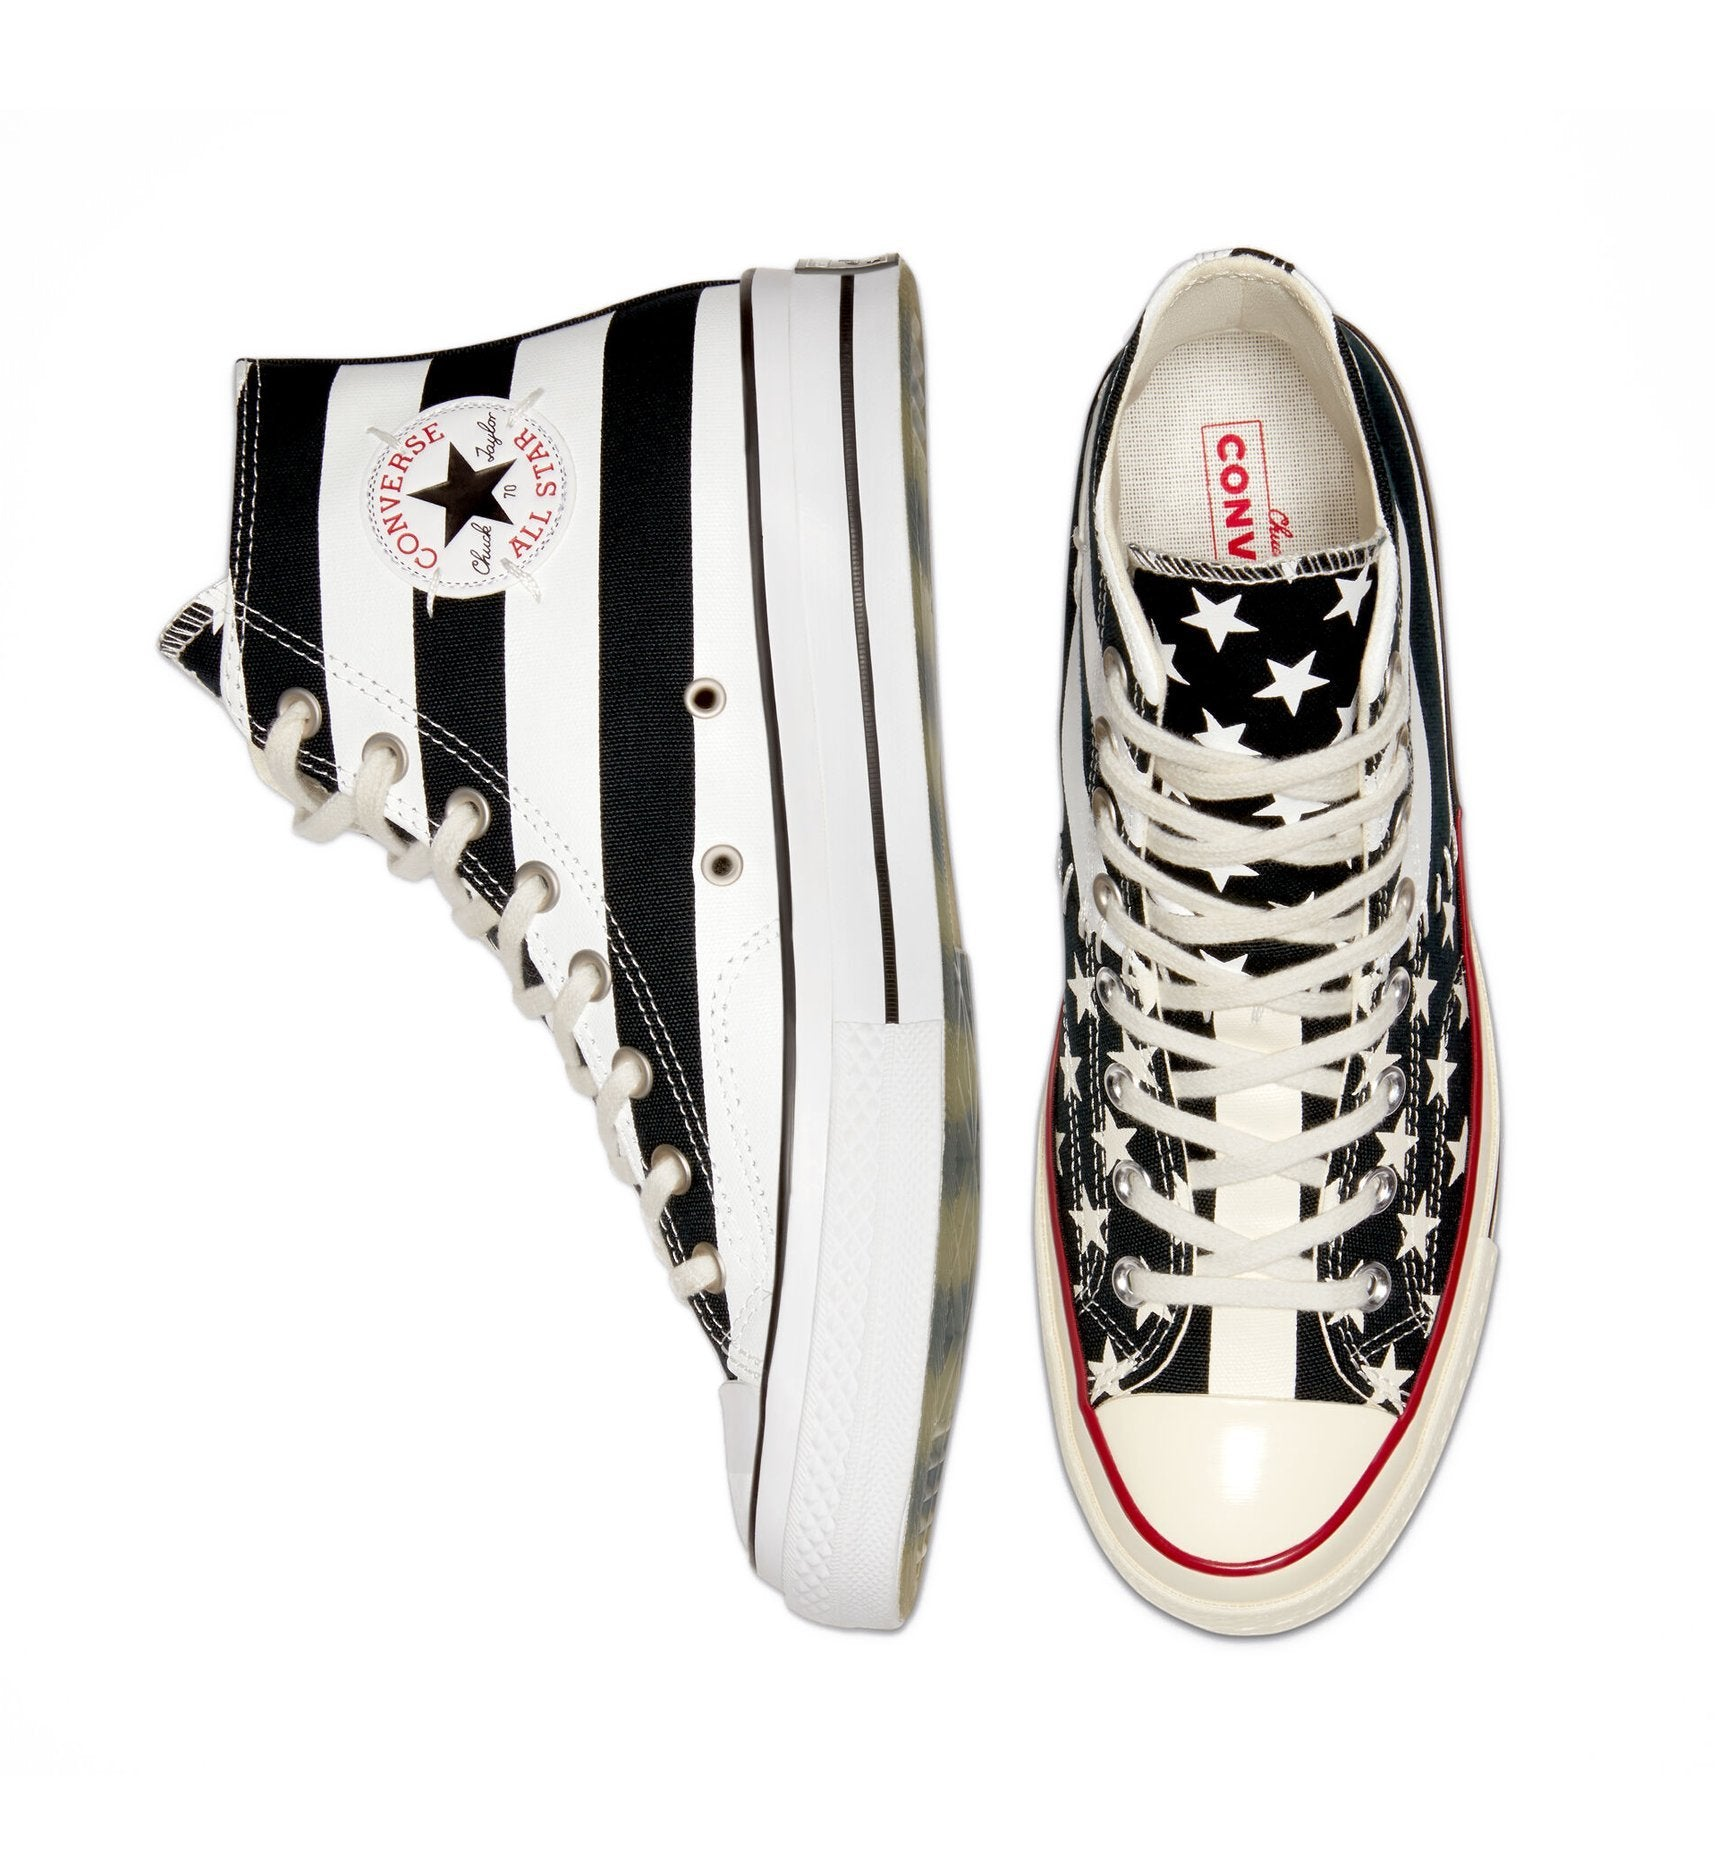 Converse Chuck 70 Restructured Archive Hi - American Flag Black/White